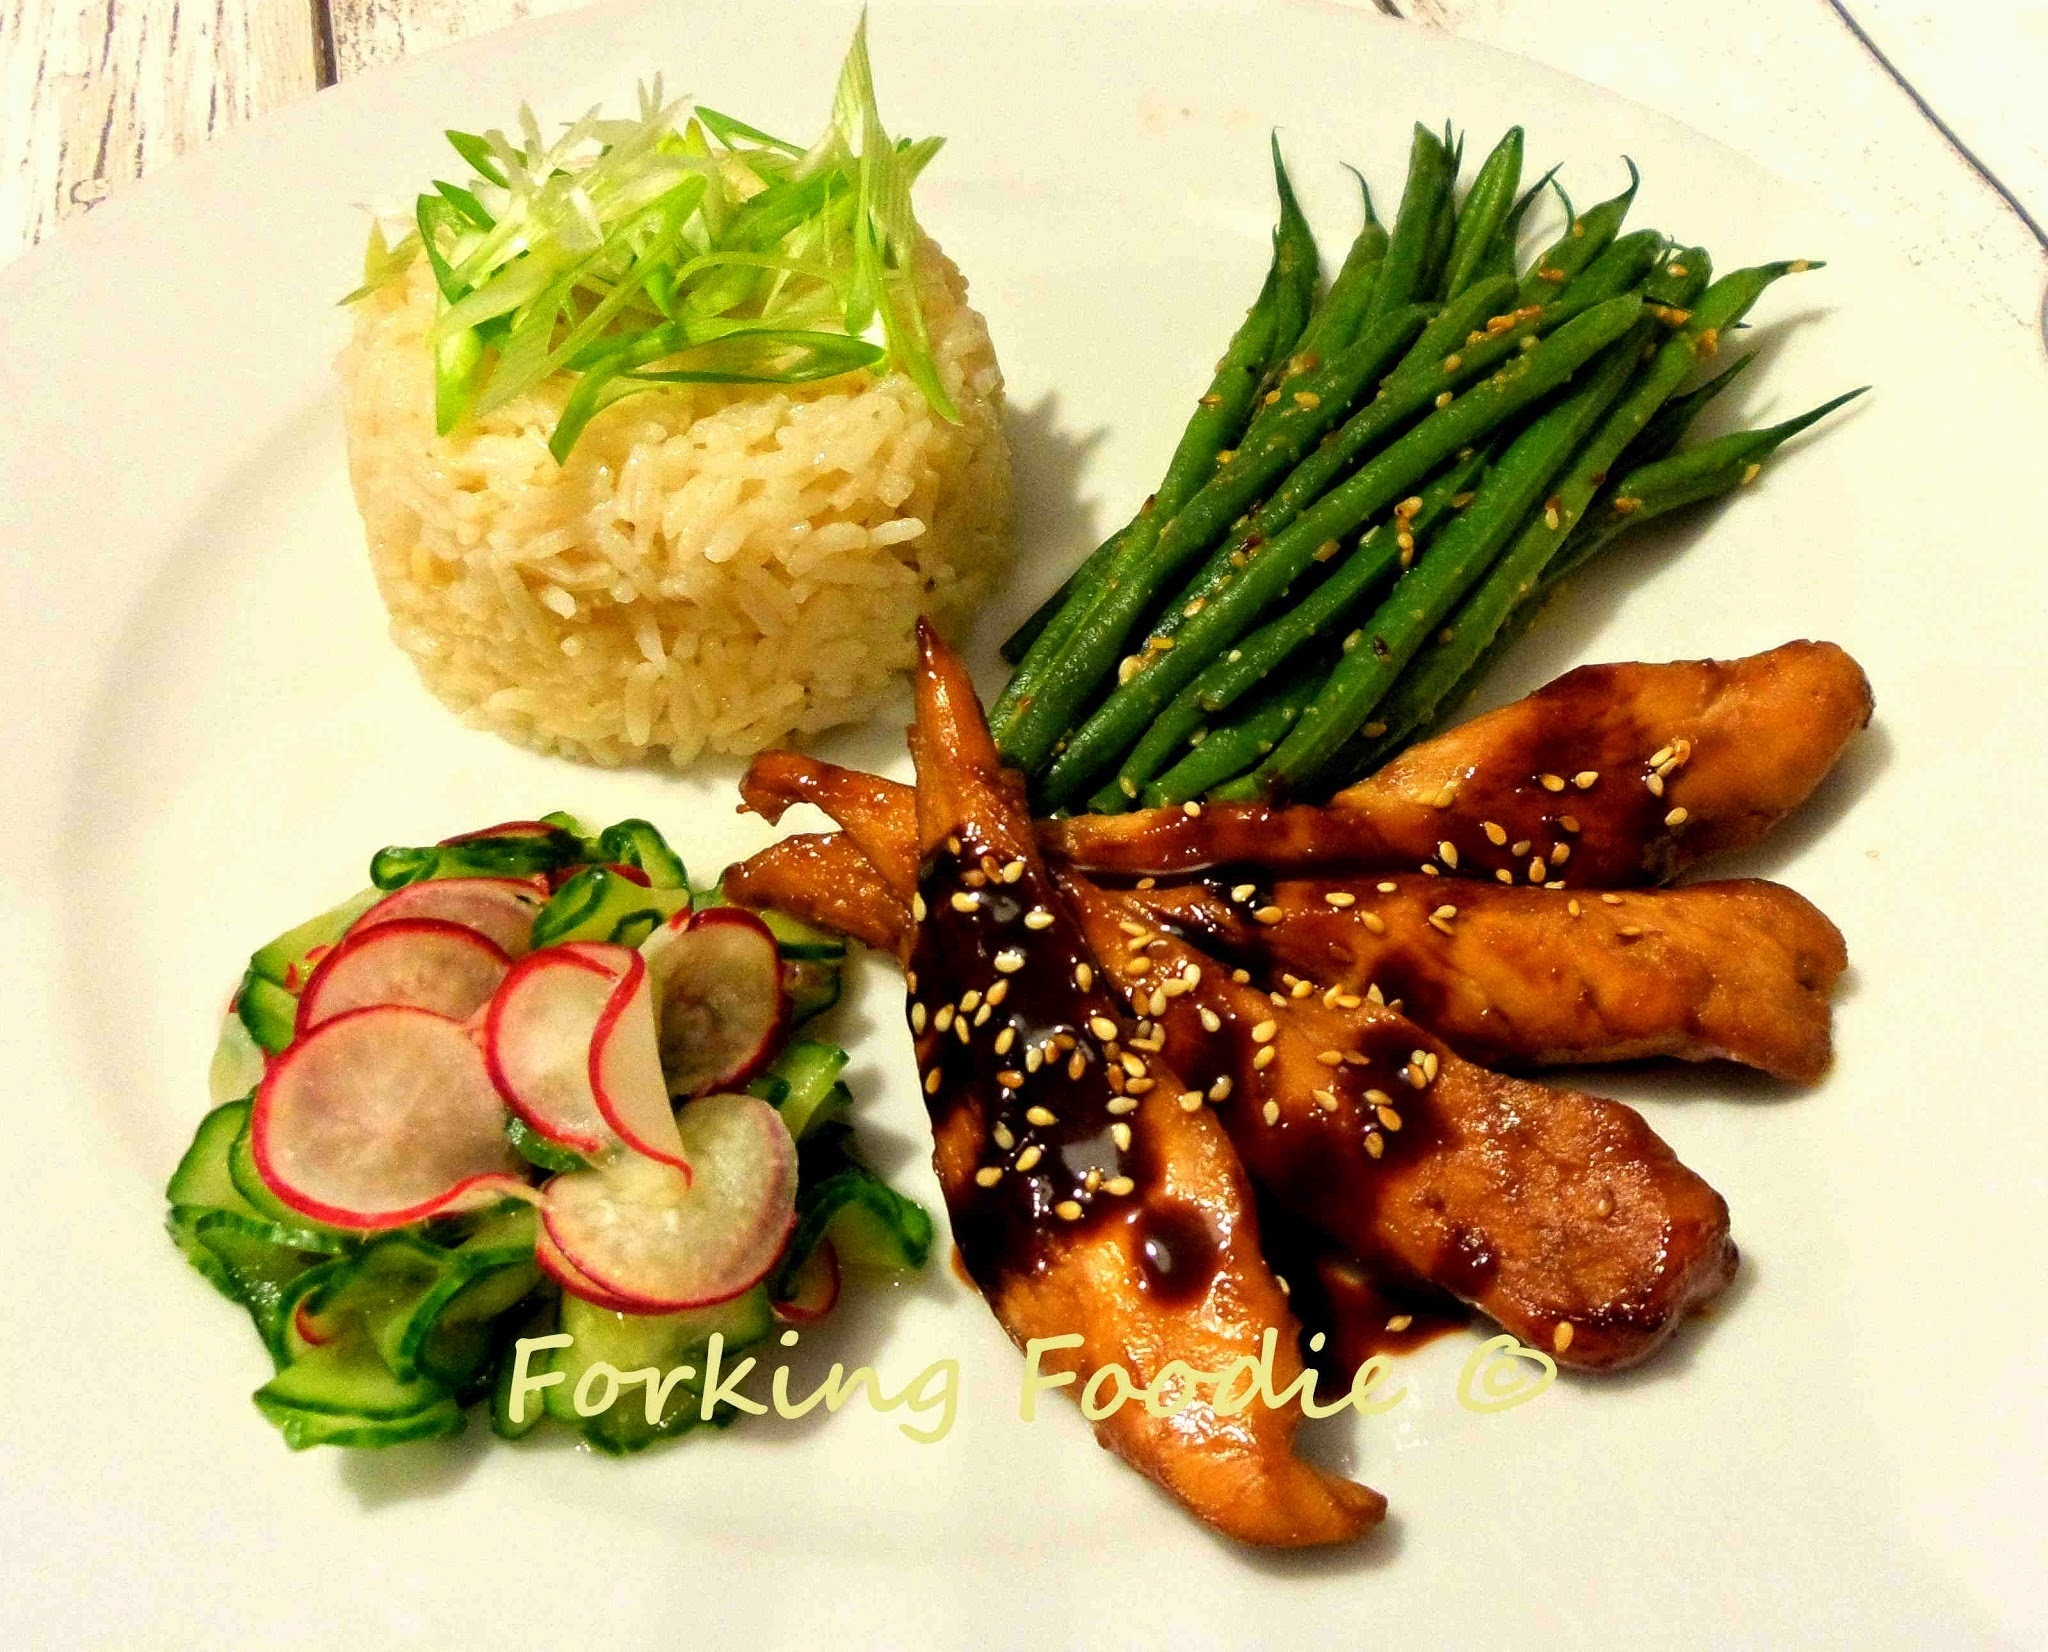 Teriyaki Chicken Meal with Sesame-Miso Green Beans, Cucumber-Radish Pickles and Rice (or Cauliflower Rice)